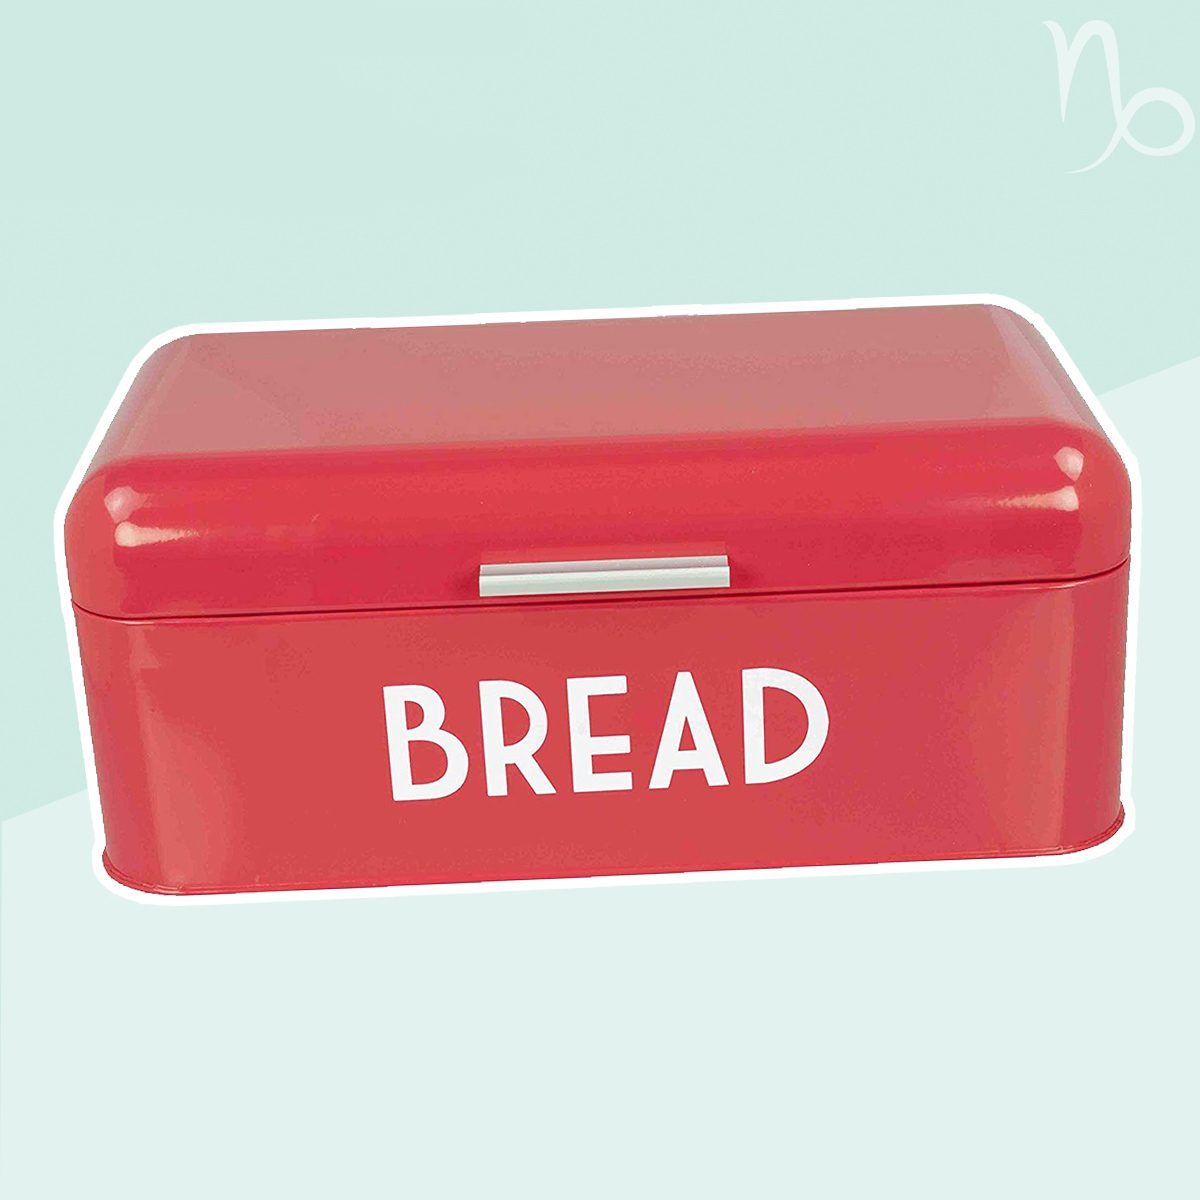 Capricorn bread box copy